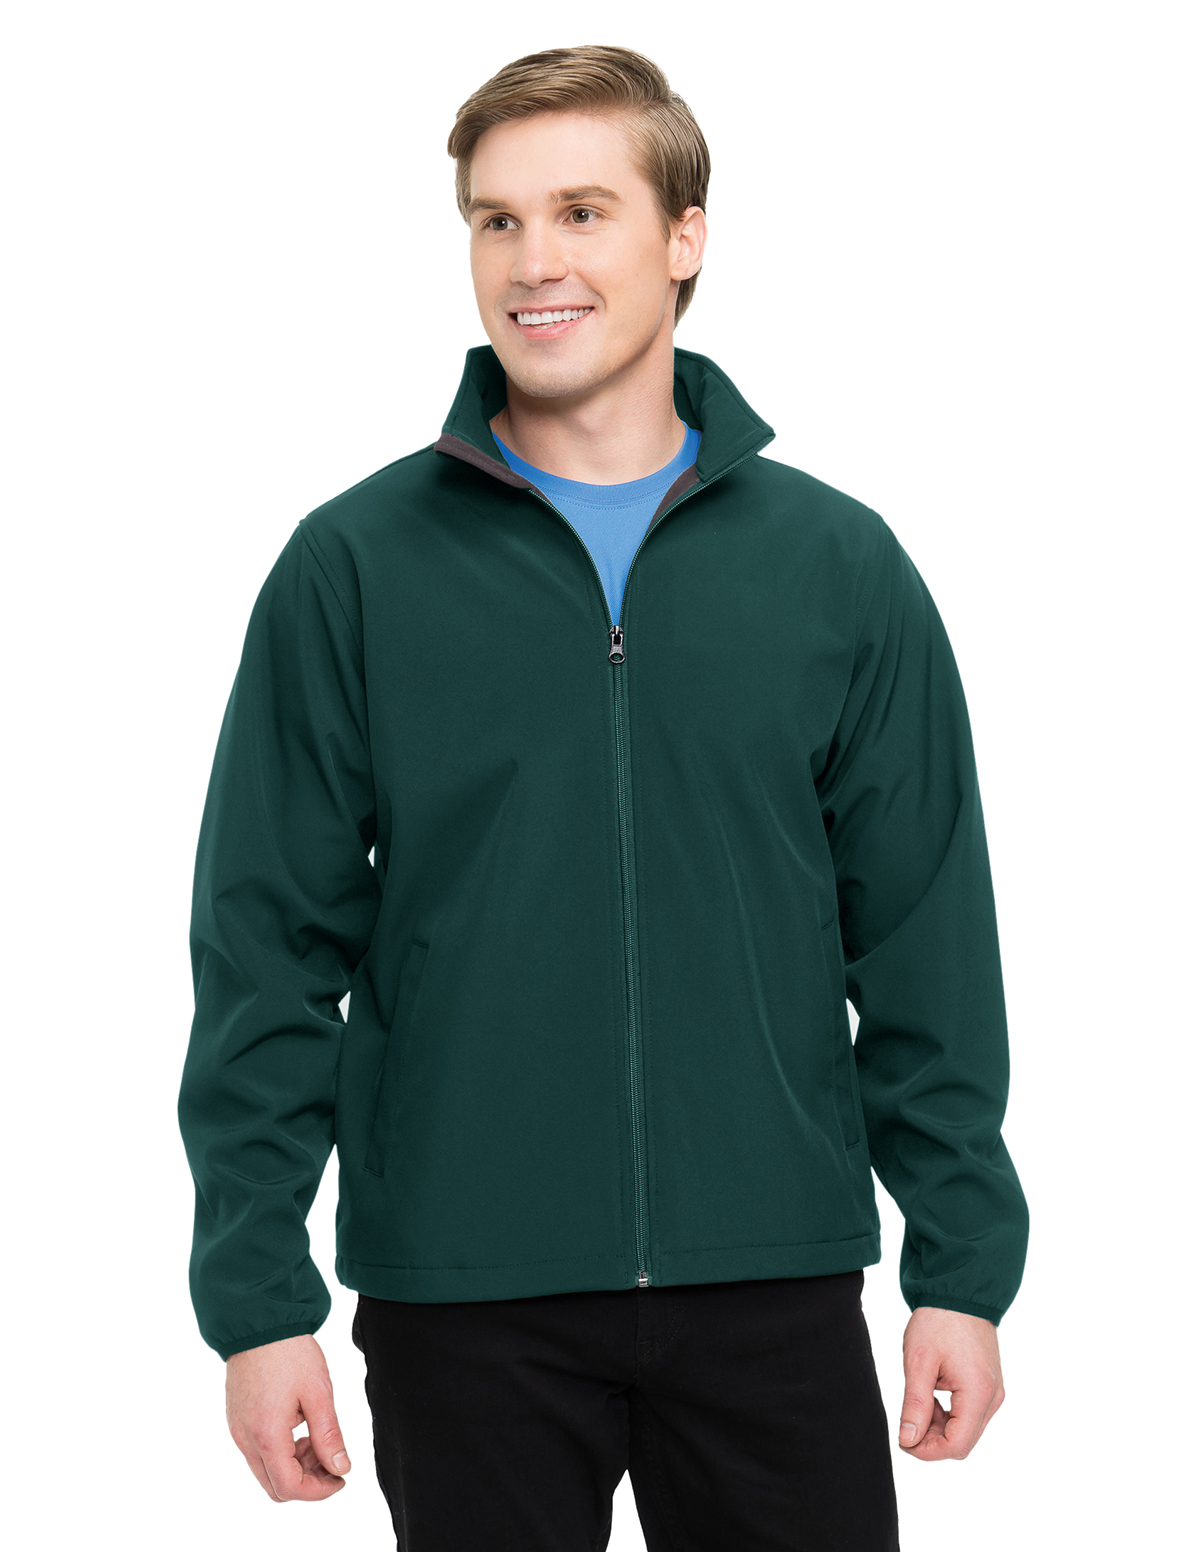 Tri-Mountain Performance J6350 - Men's Vital Bonded Soft Shell Jacket